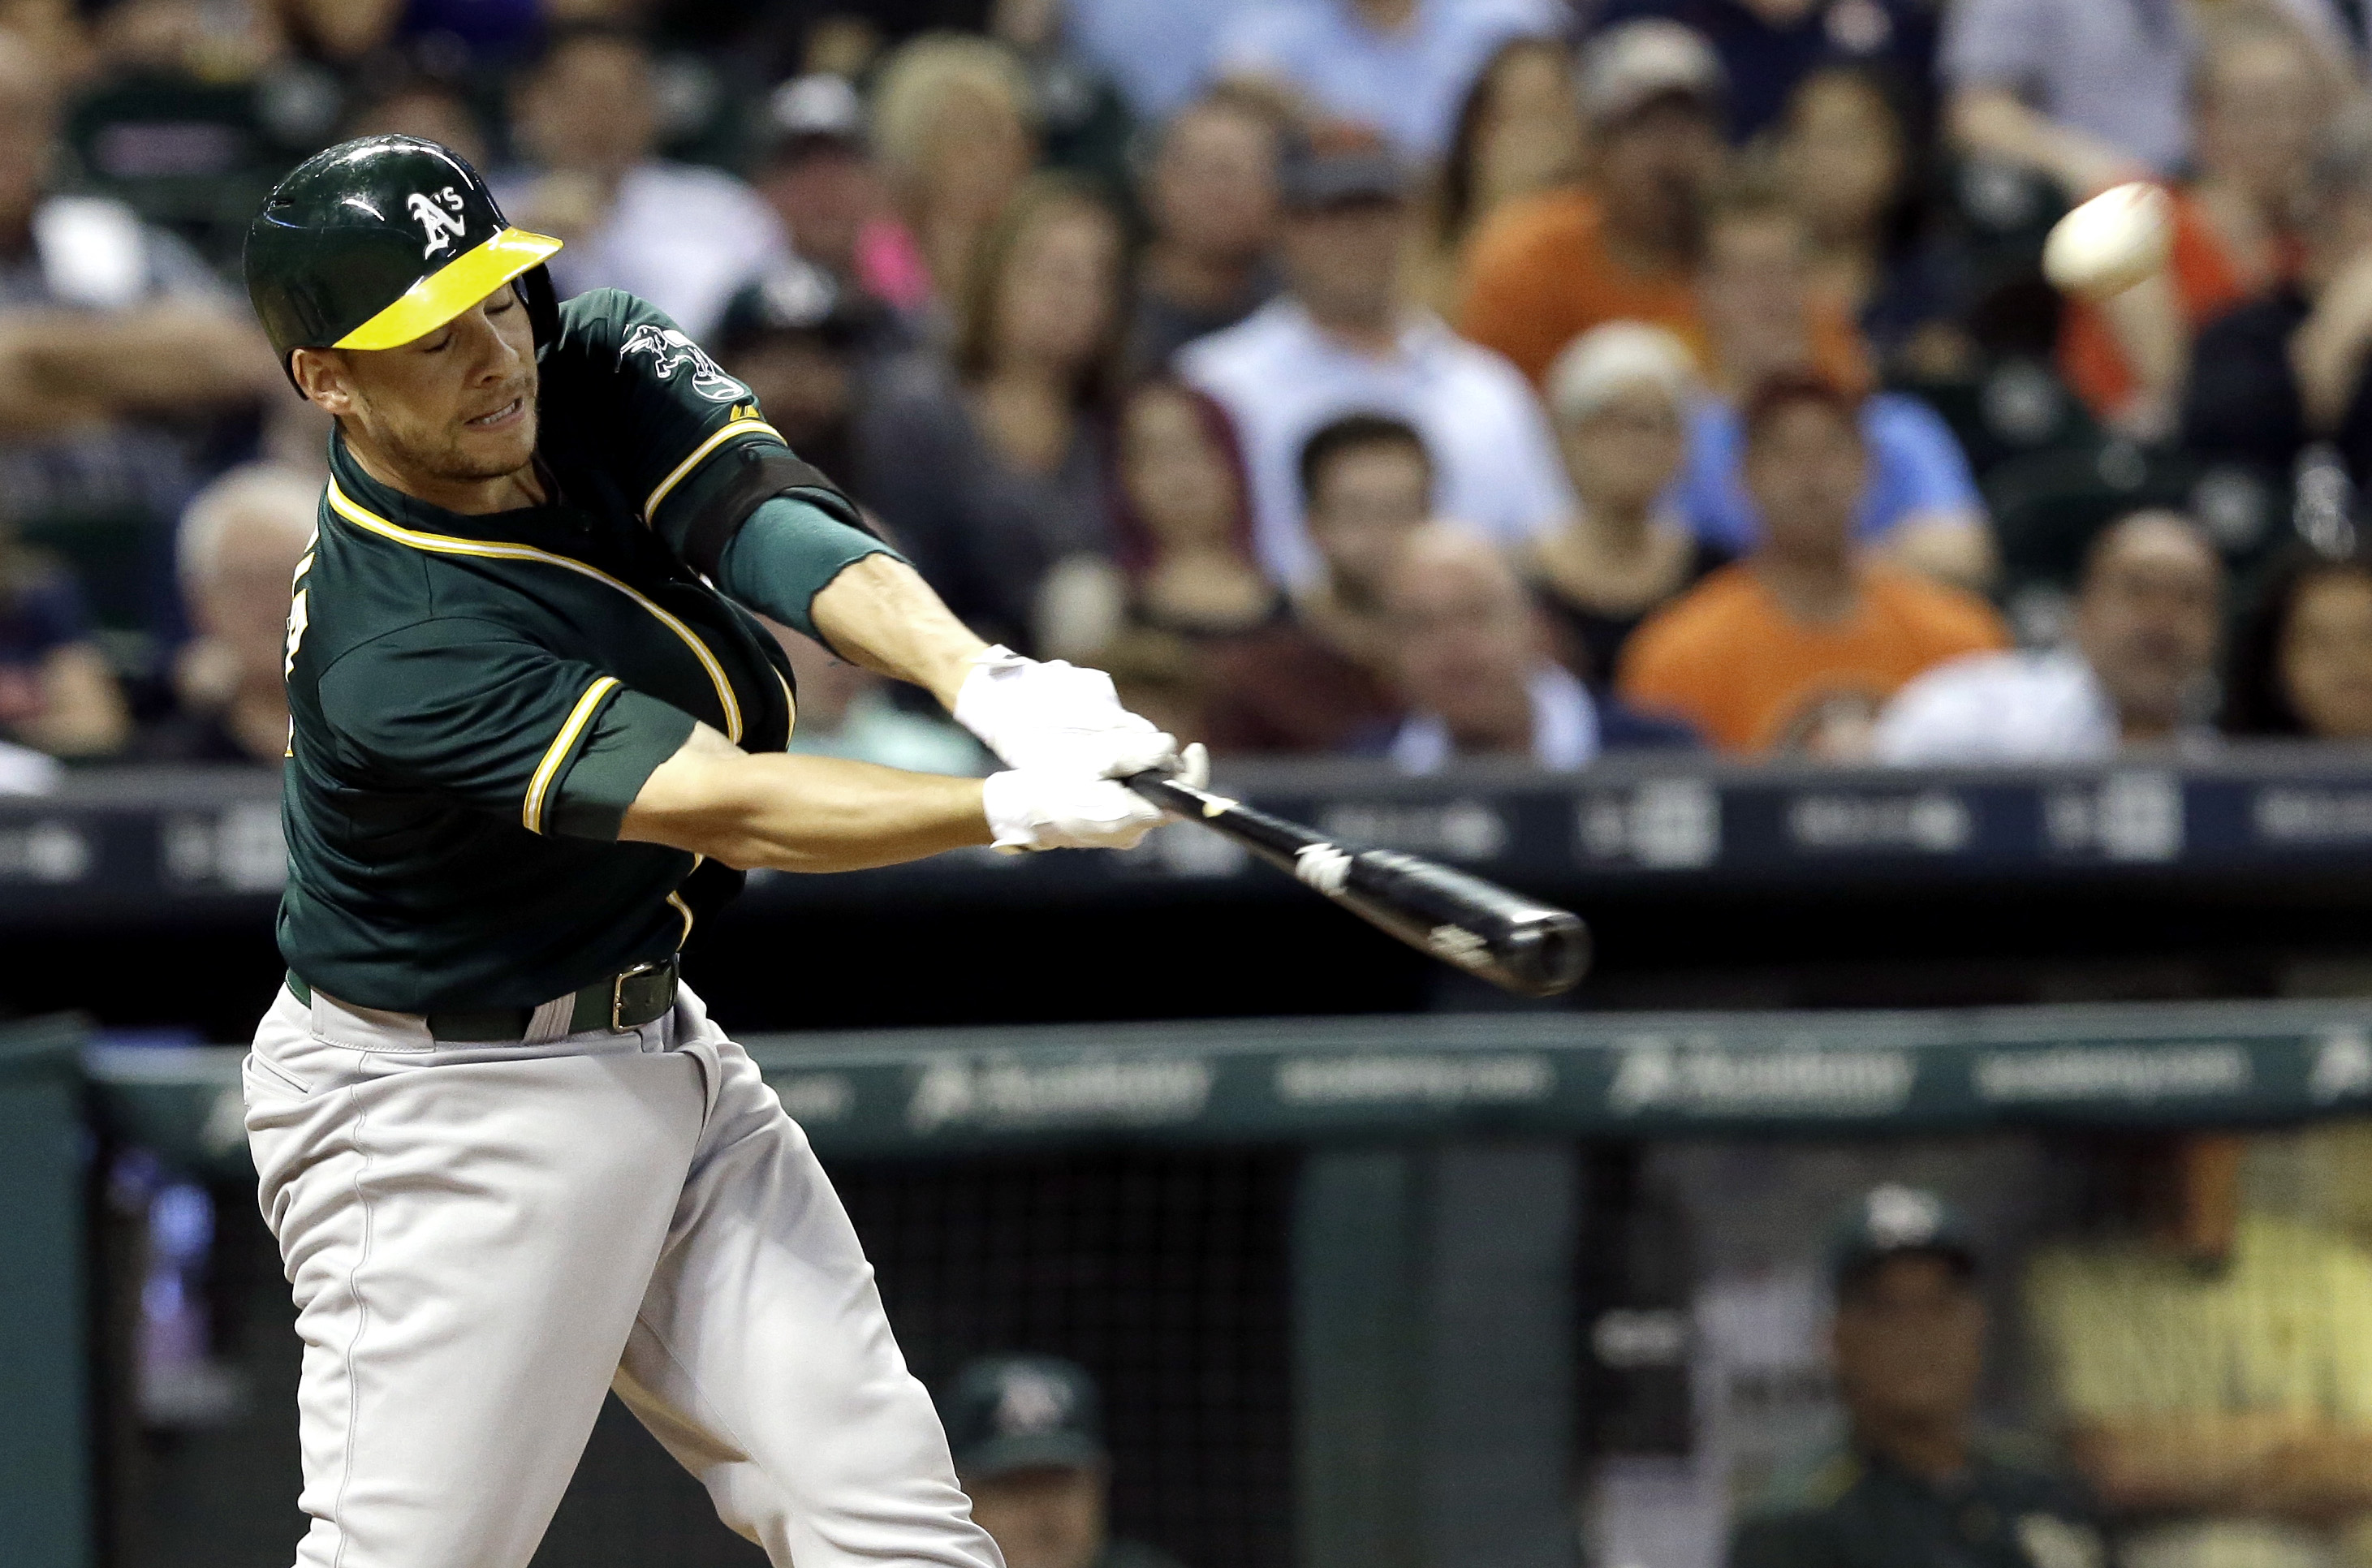 Oakland Athletics' Danny Valencia connects for a home run, his second of the game, against the Houston Astros in the eighth inning of a baseball game Friday, Sept. 18, 2015, in Houston. (AP Photo/Pat Sullivan)